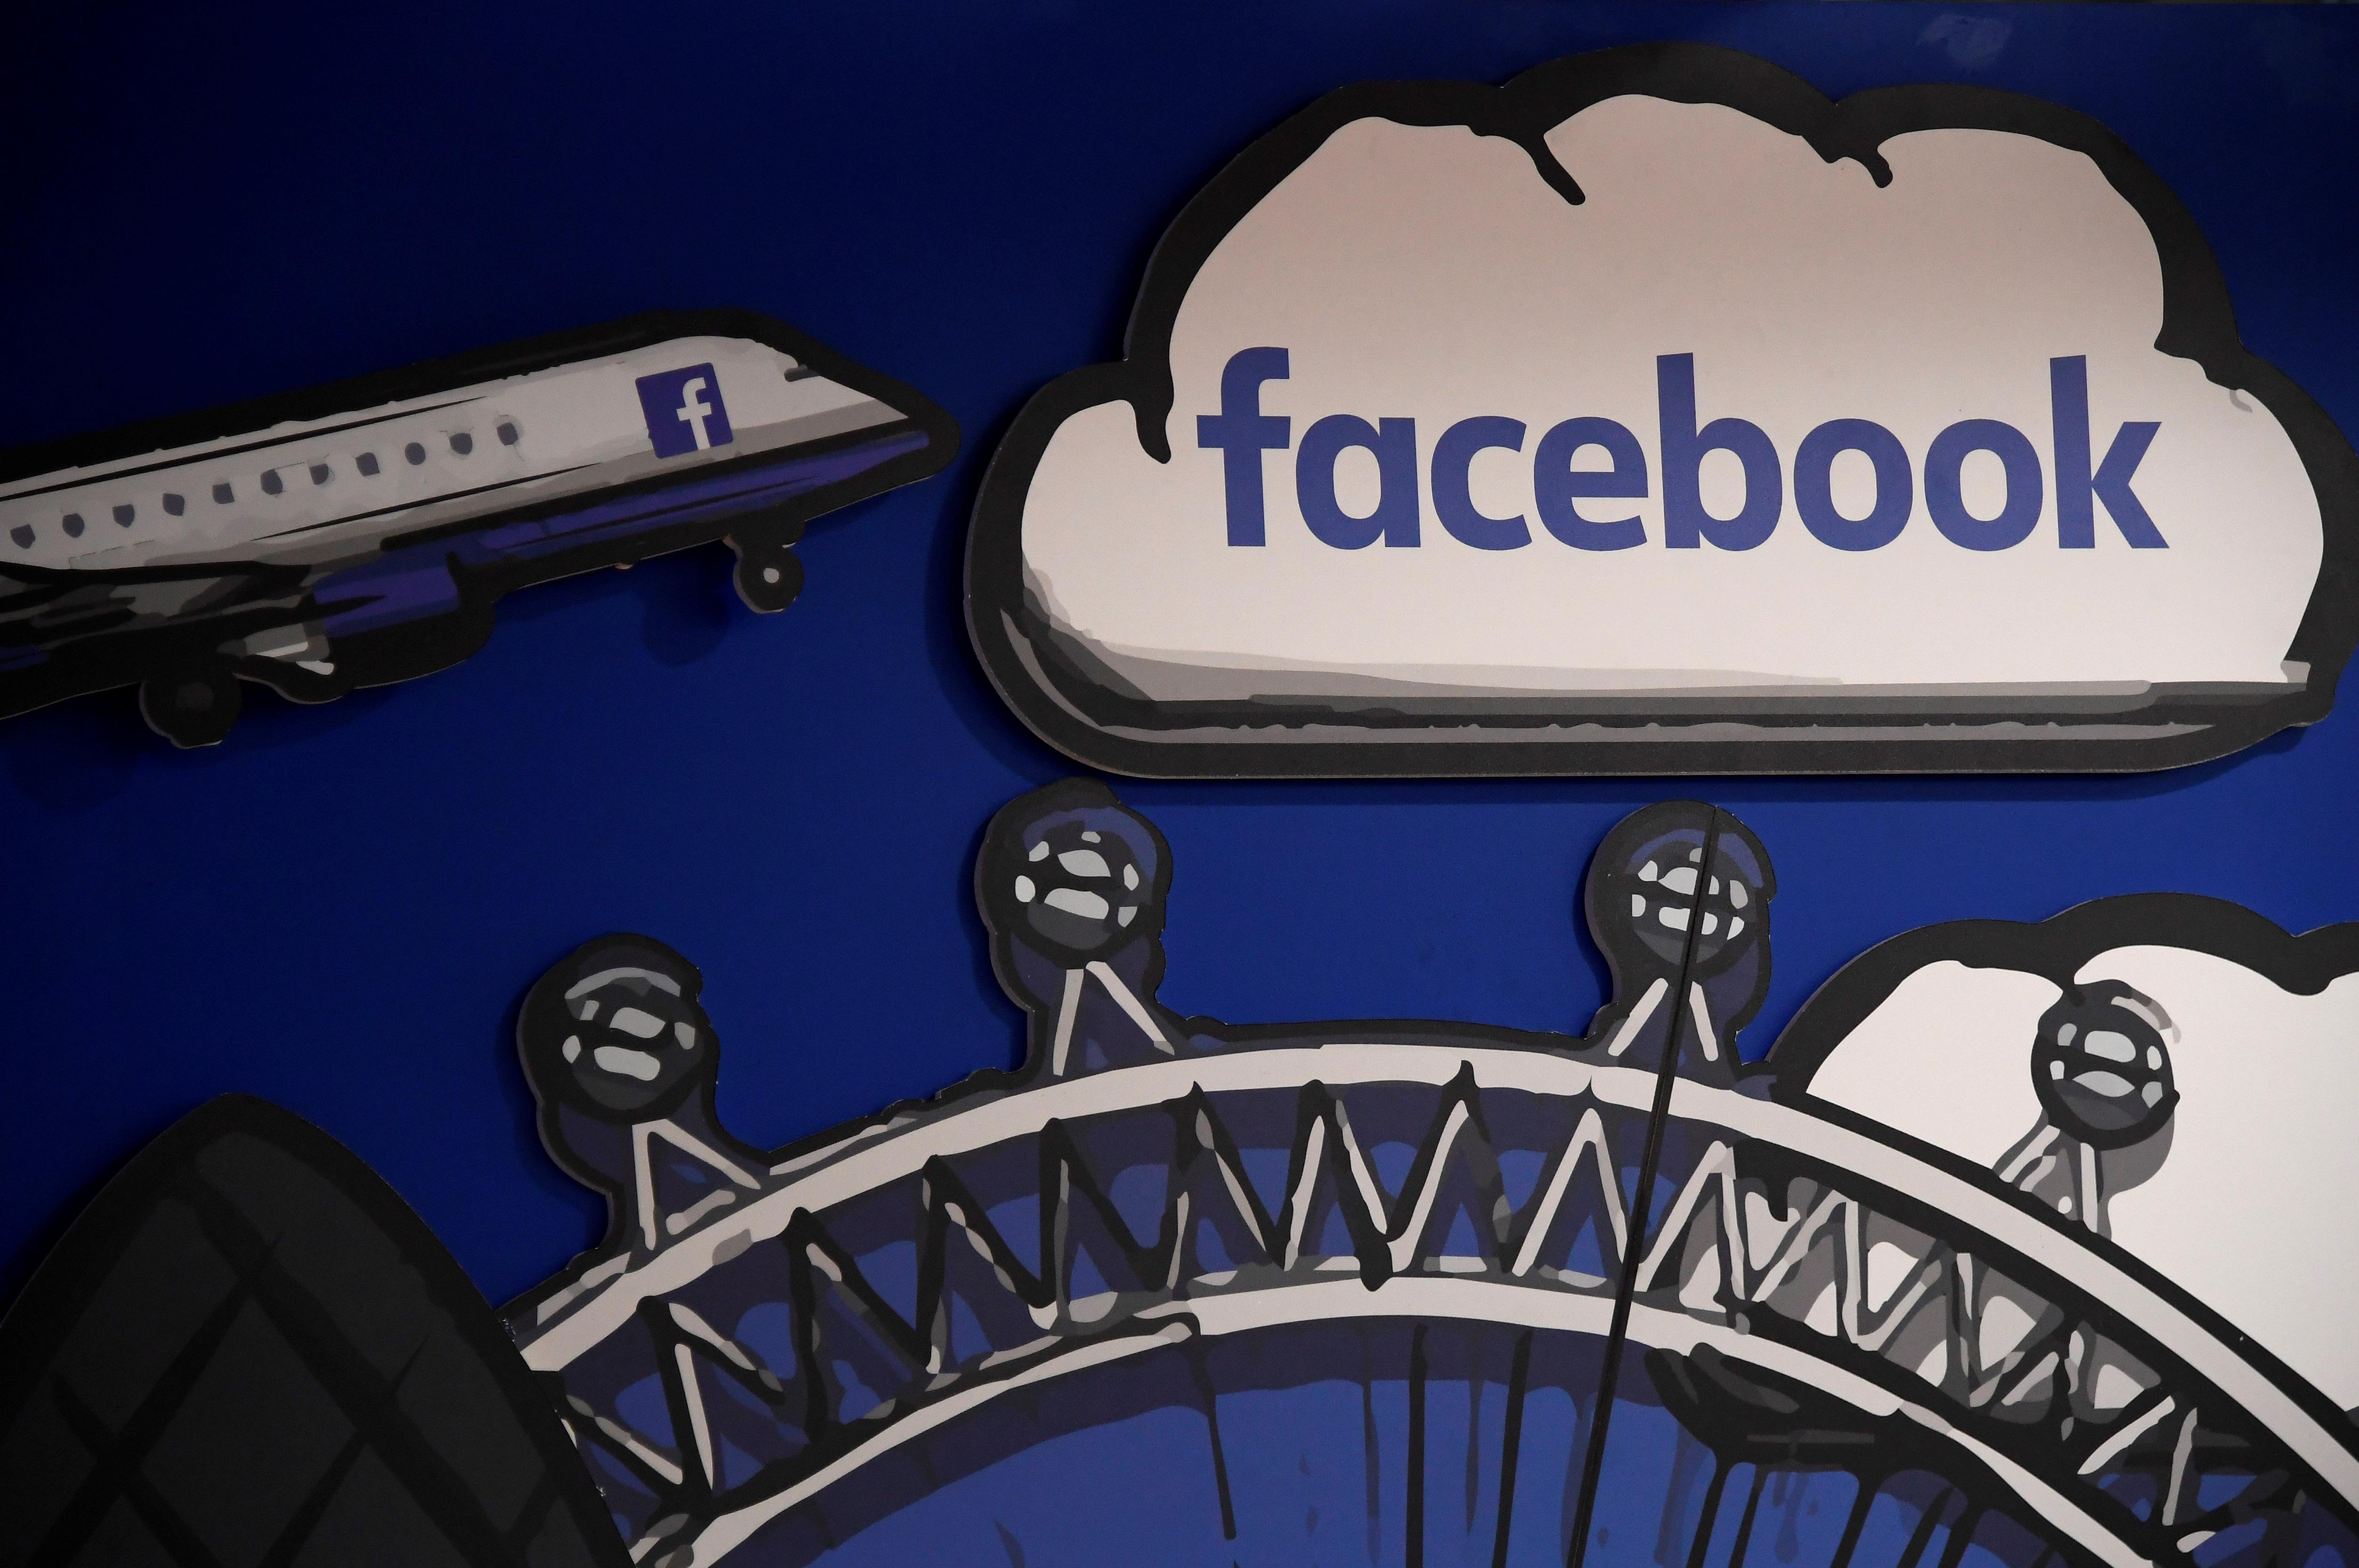 Facebook to create 1,000 new jobs in London